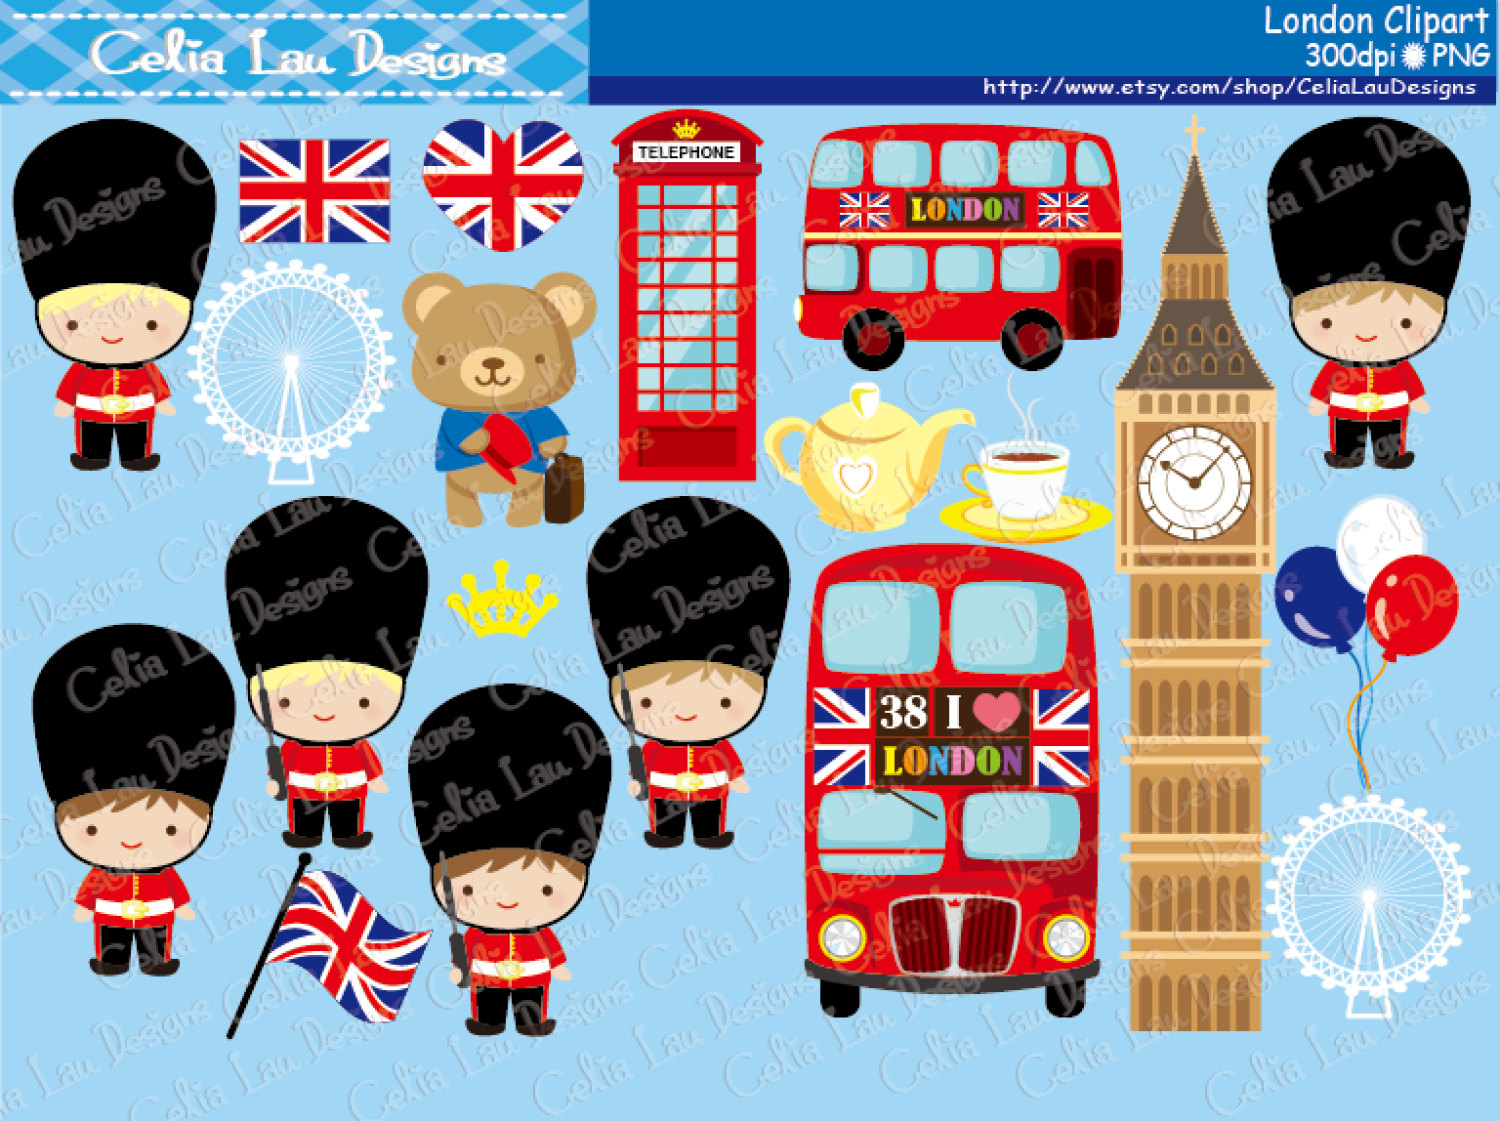 Telephone Booth clipart british guard (CG128 London art Etsy Britian